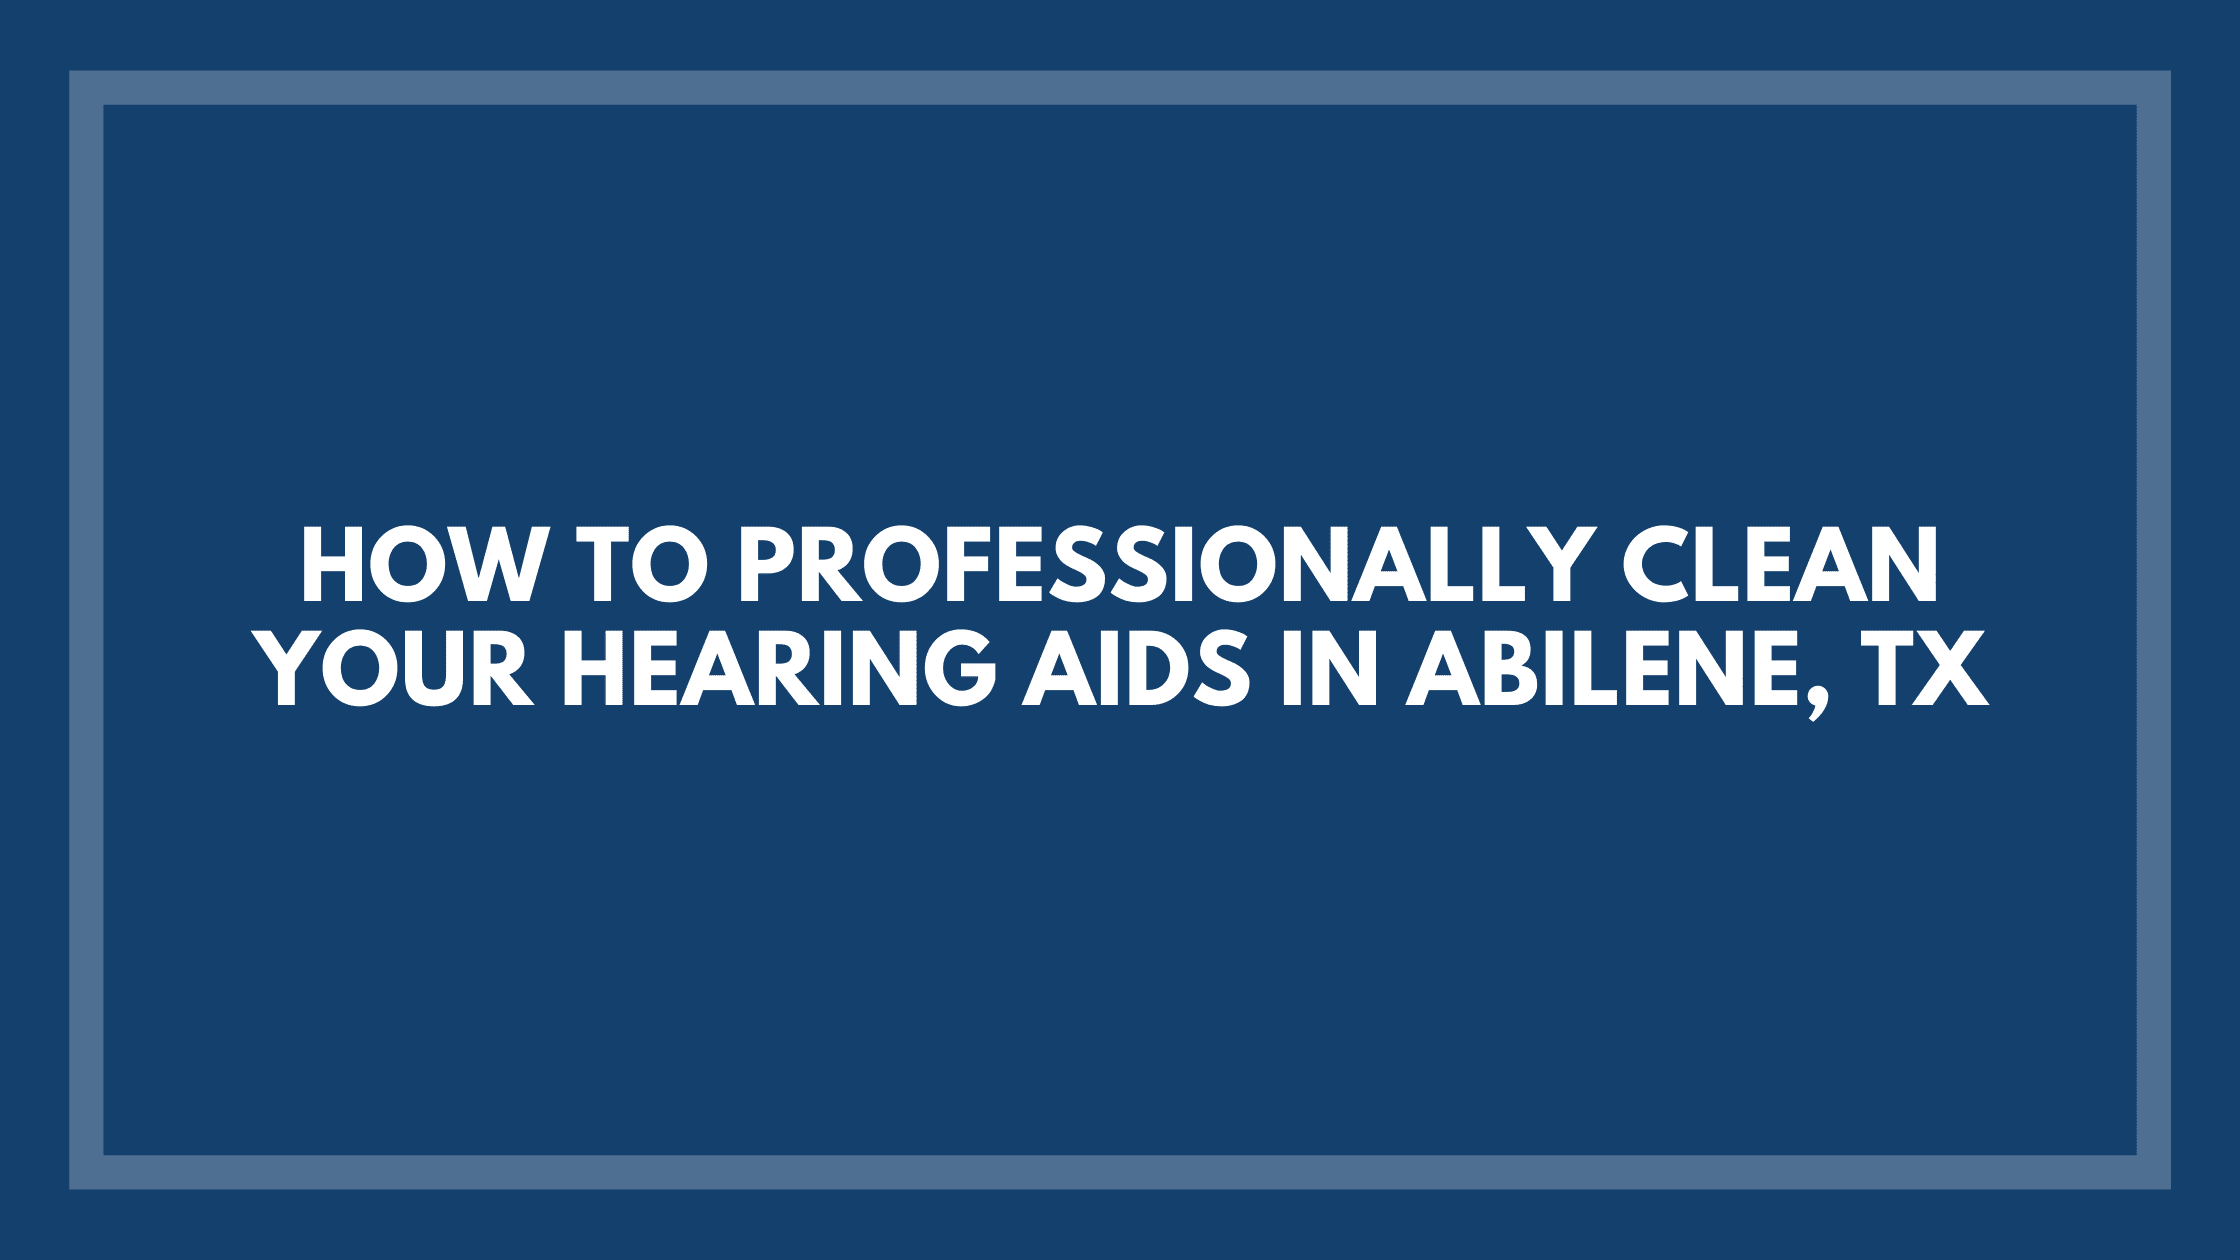 How-to-Professionally-Clean-Your-Hearing-Aids-in-Abilene,-TX